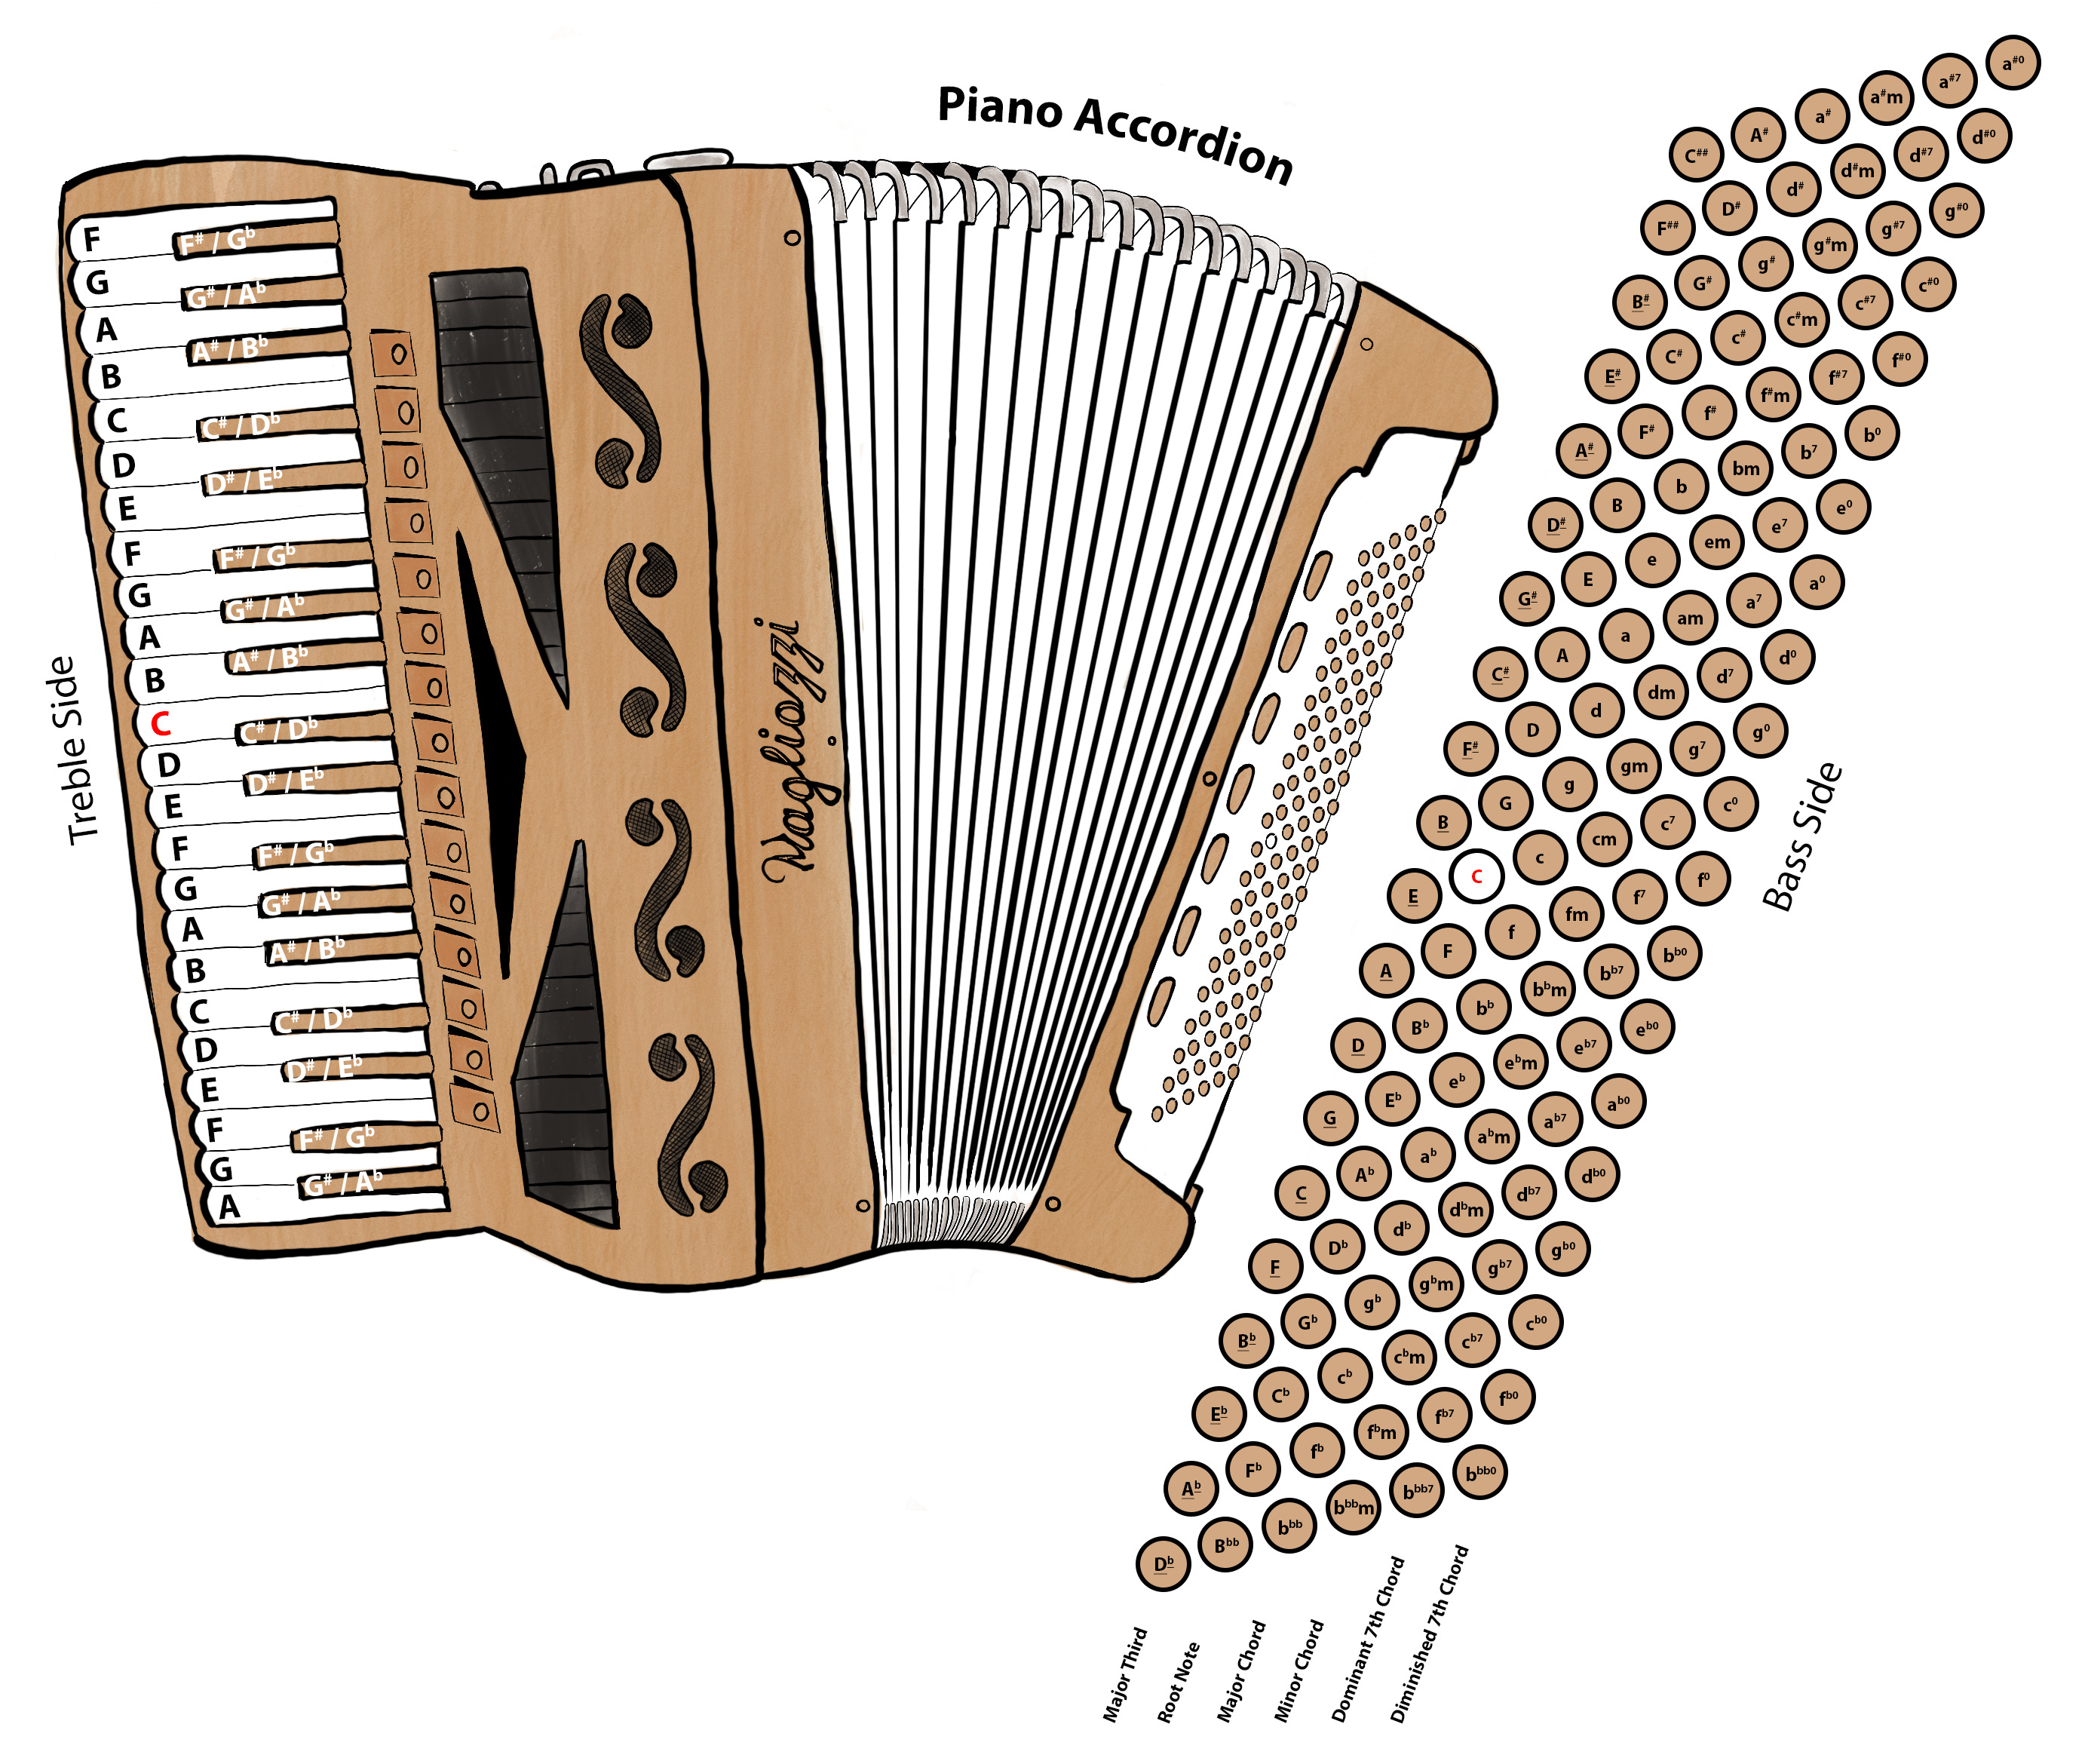 Piano accordion diagram cristoforo magliozzi there are chromatic accordions with buttons on both sides and there are piano accordions with buttons on one side this diagram was an attempt to indicate pooptronica